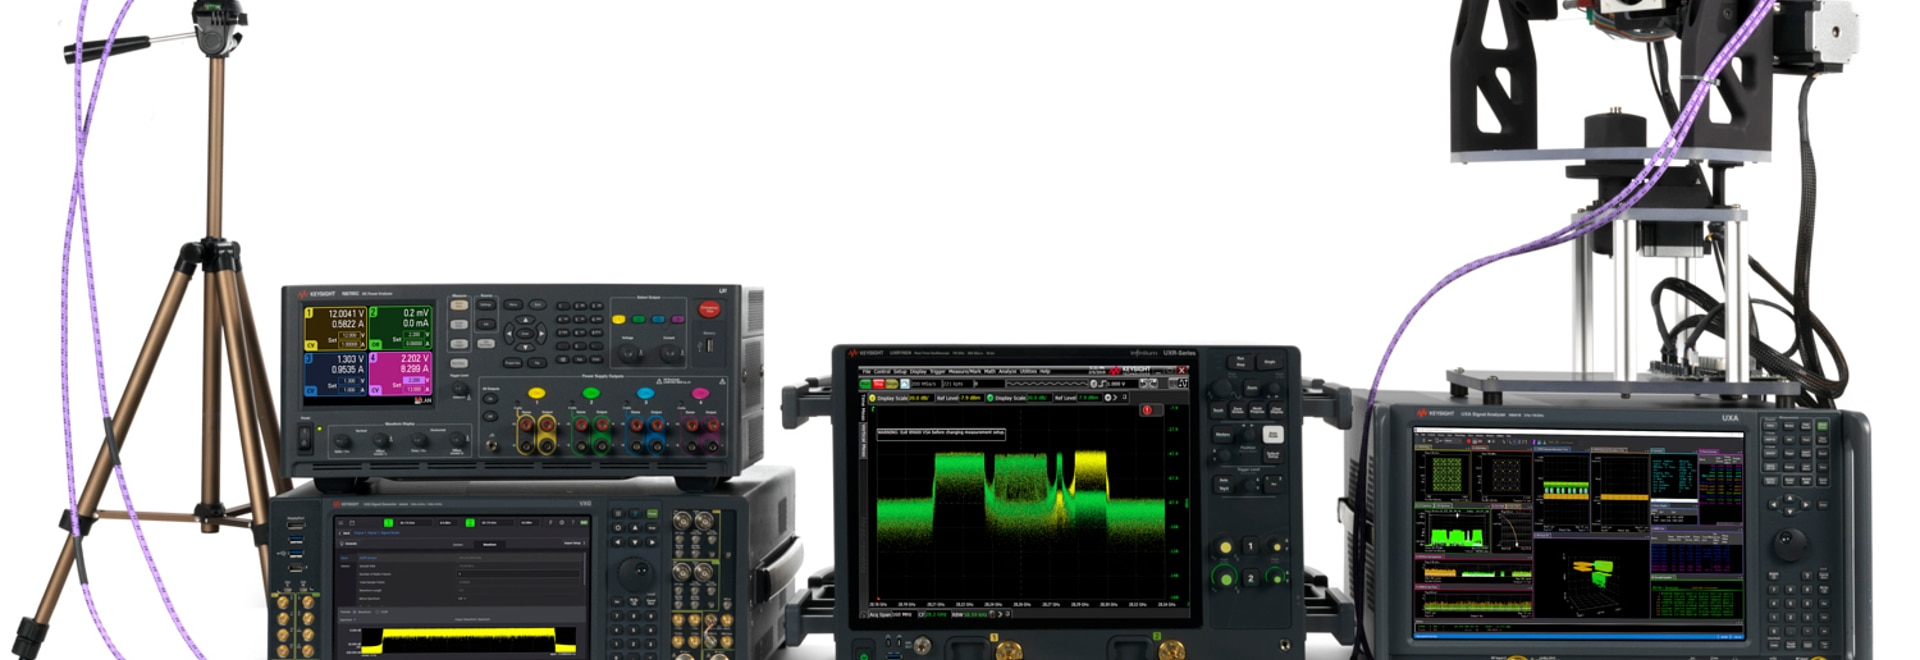 These Microwave Signal Generators are Ready for 5G